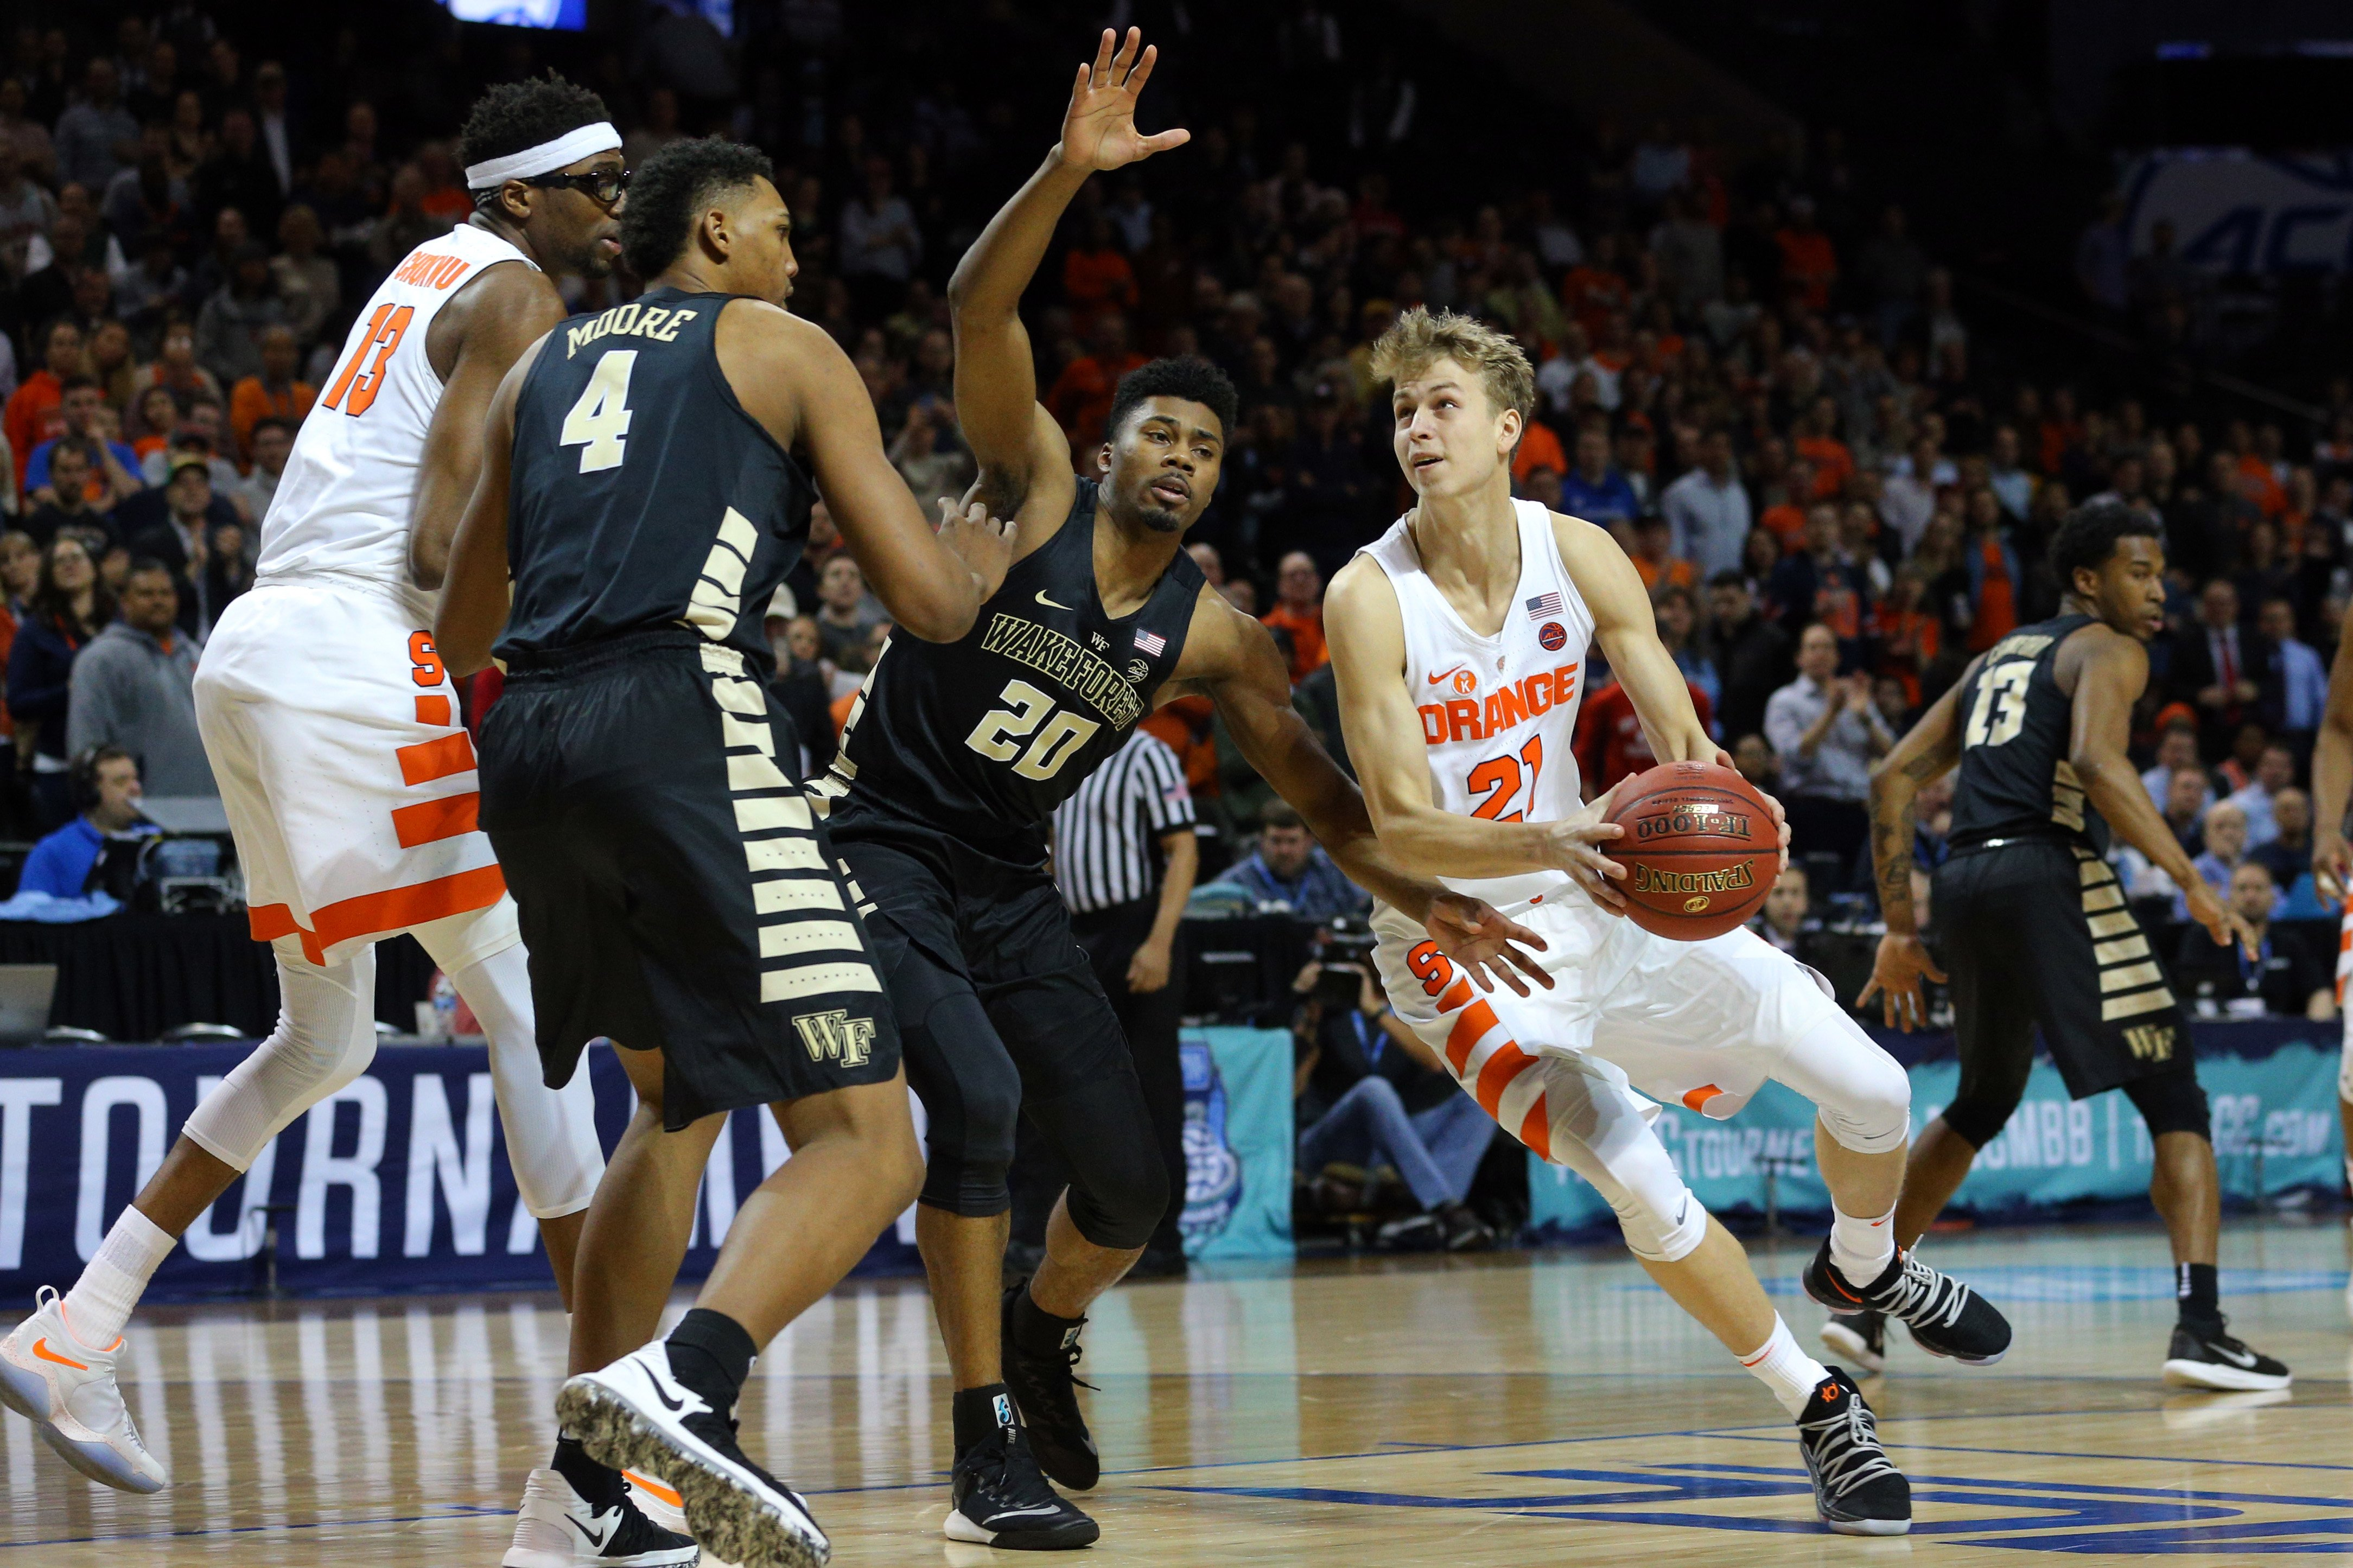 Vegas Play of the Day: Wake Forest vs. Syracuse